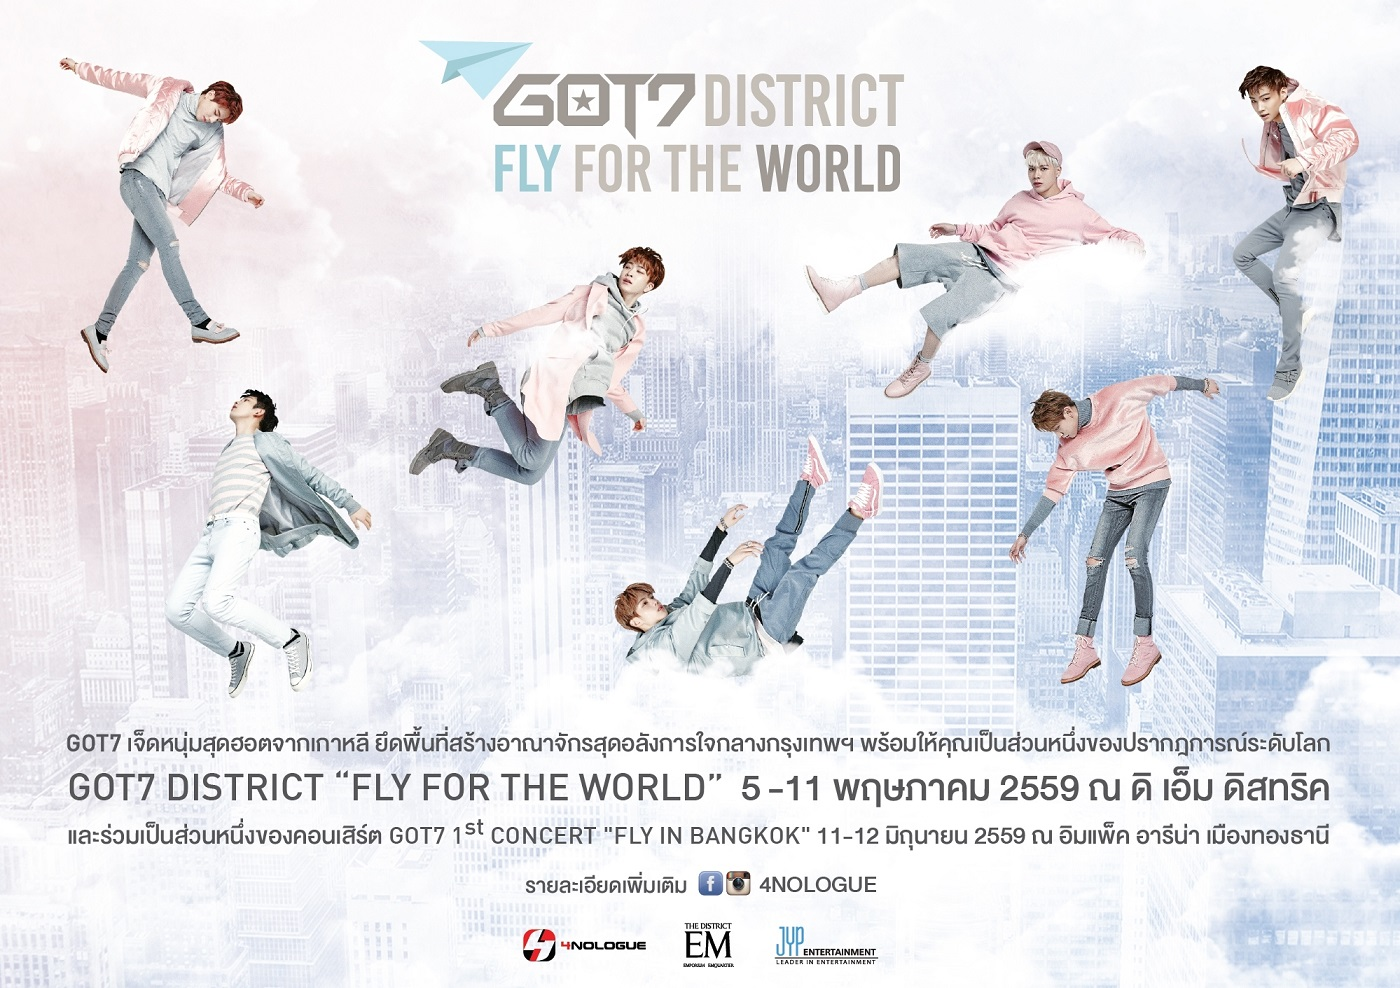 2016.04.25 GOT7 DISTRCIT 'FLY FOR THE WORLD' Poster   5280